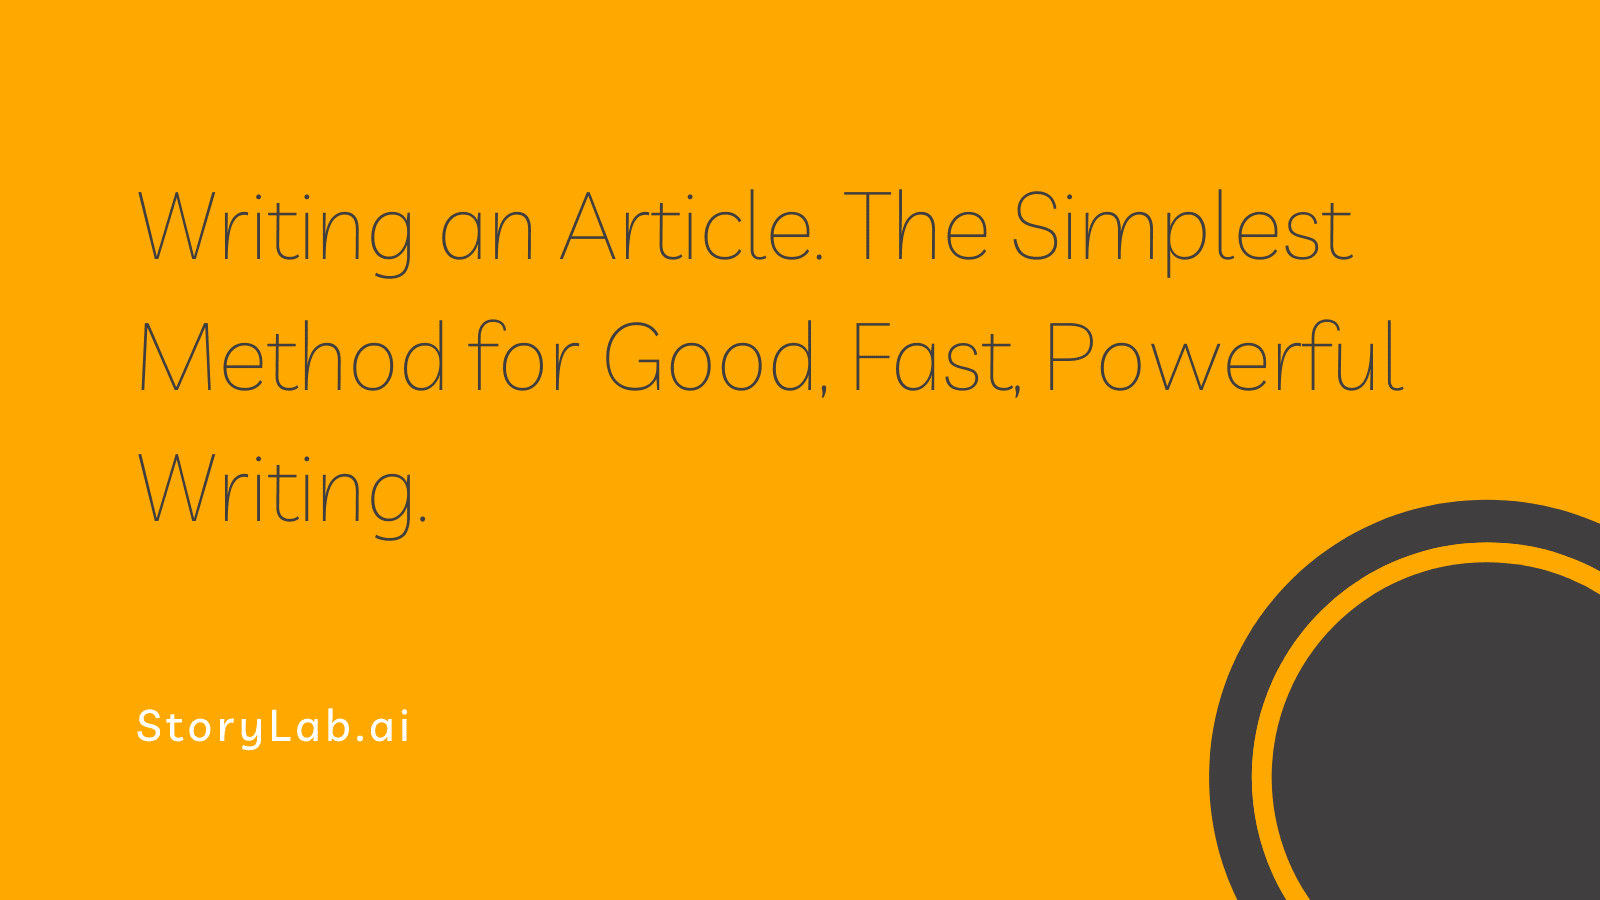 Writing an Article. The Simplest Method for Good, Fast, Powerful Writing